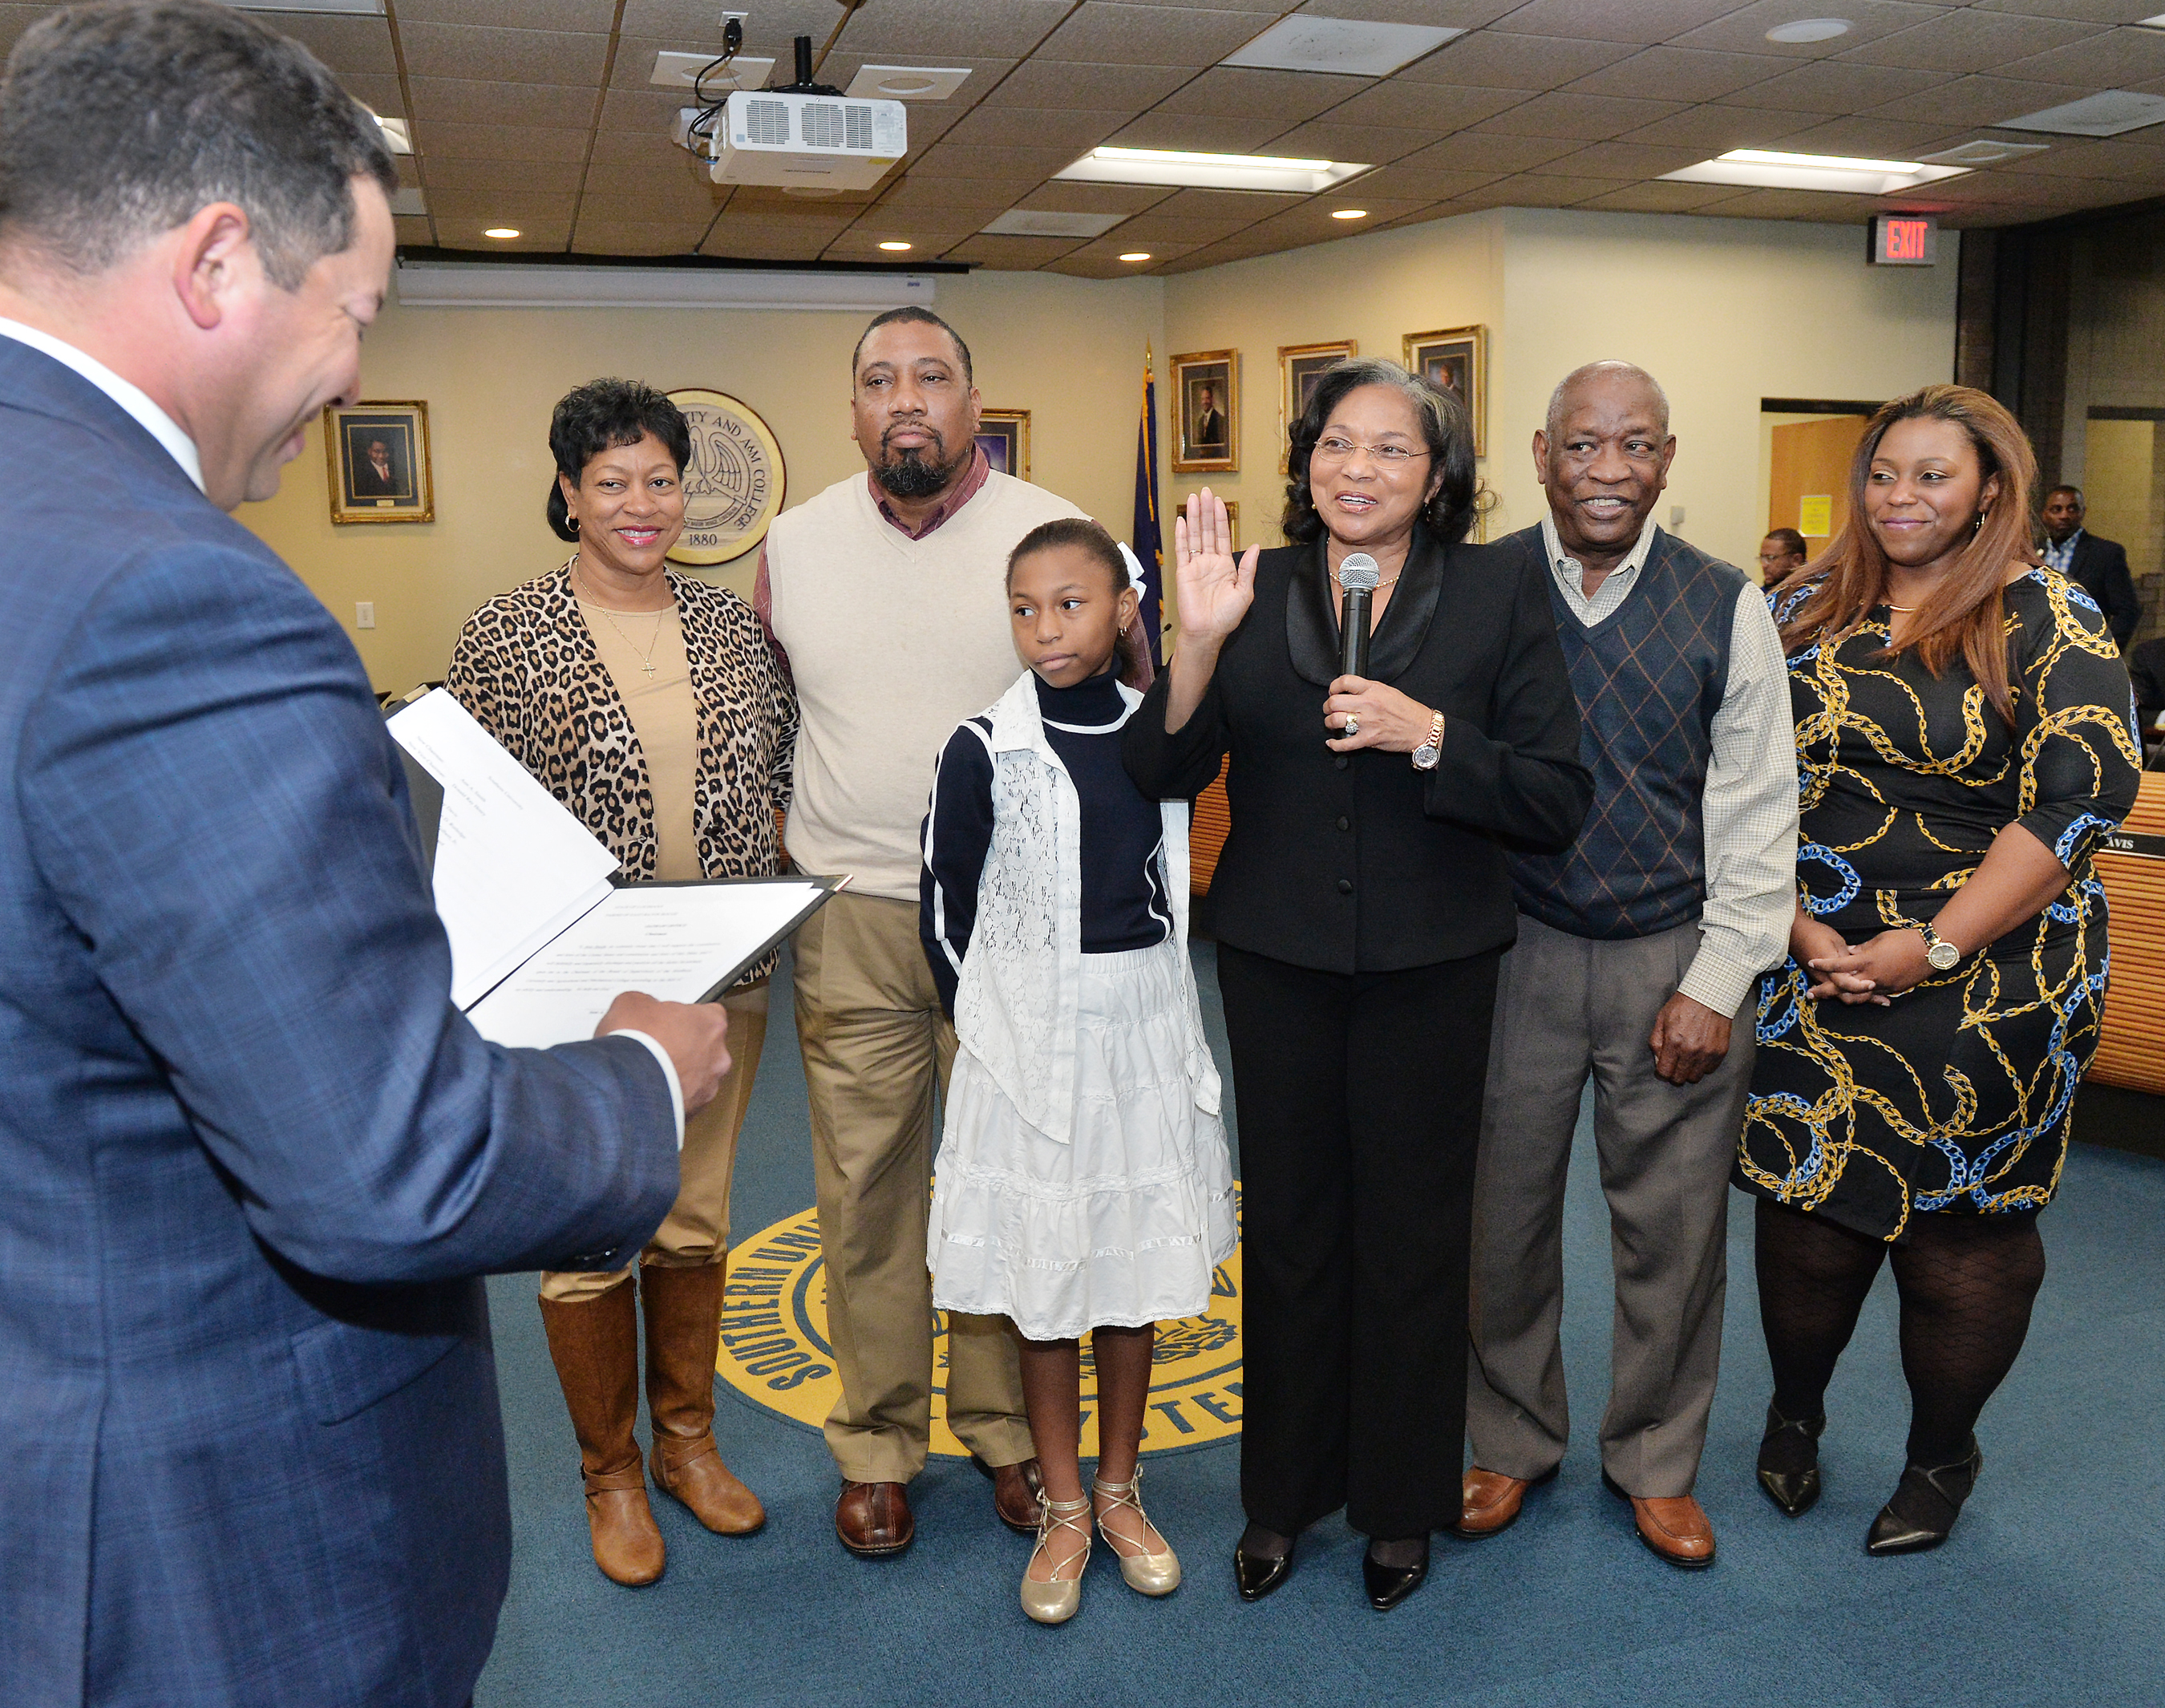 Southern University Board of Supervisors chairwoman Ann A. Smith is installed during the governing board's regular meeting January 6, 2017, in Baton Rouge. SU Board of Supervisors general counsel Winston Decuir Jr. administers the oath of office. Pictured (left to right) are:  EBR School Board Member Vereta Lee, Steven Smith, Hannah Smith, Ann A. Smith, Harold Smith, and Joi Smit